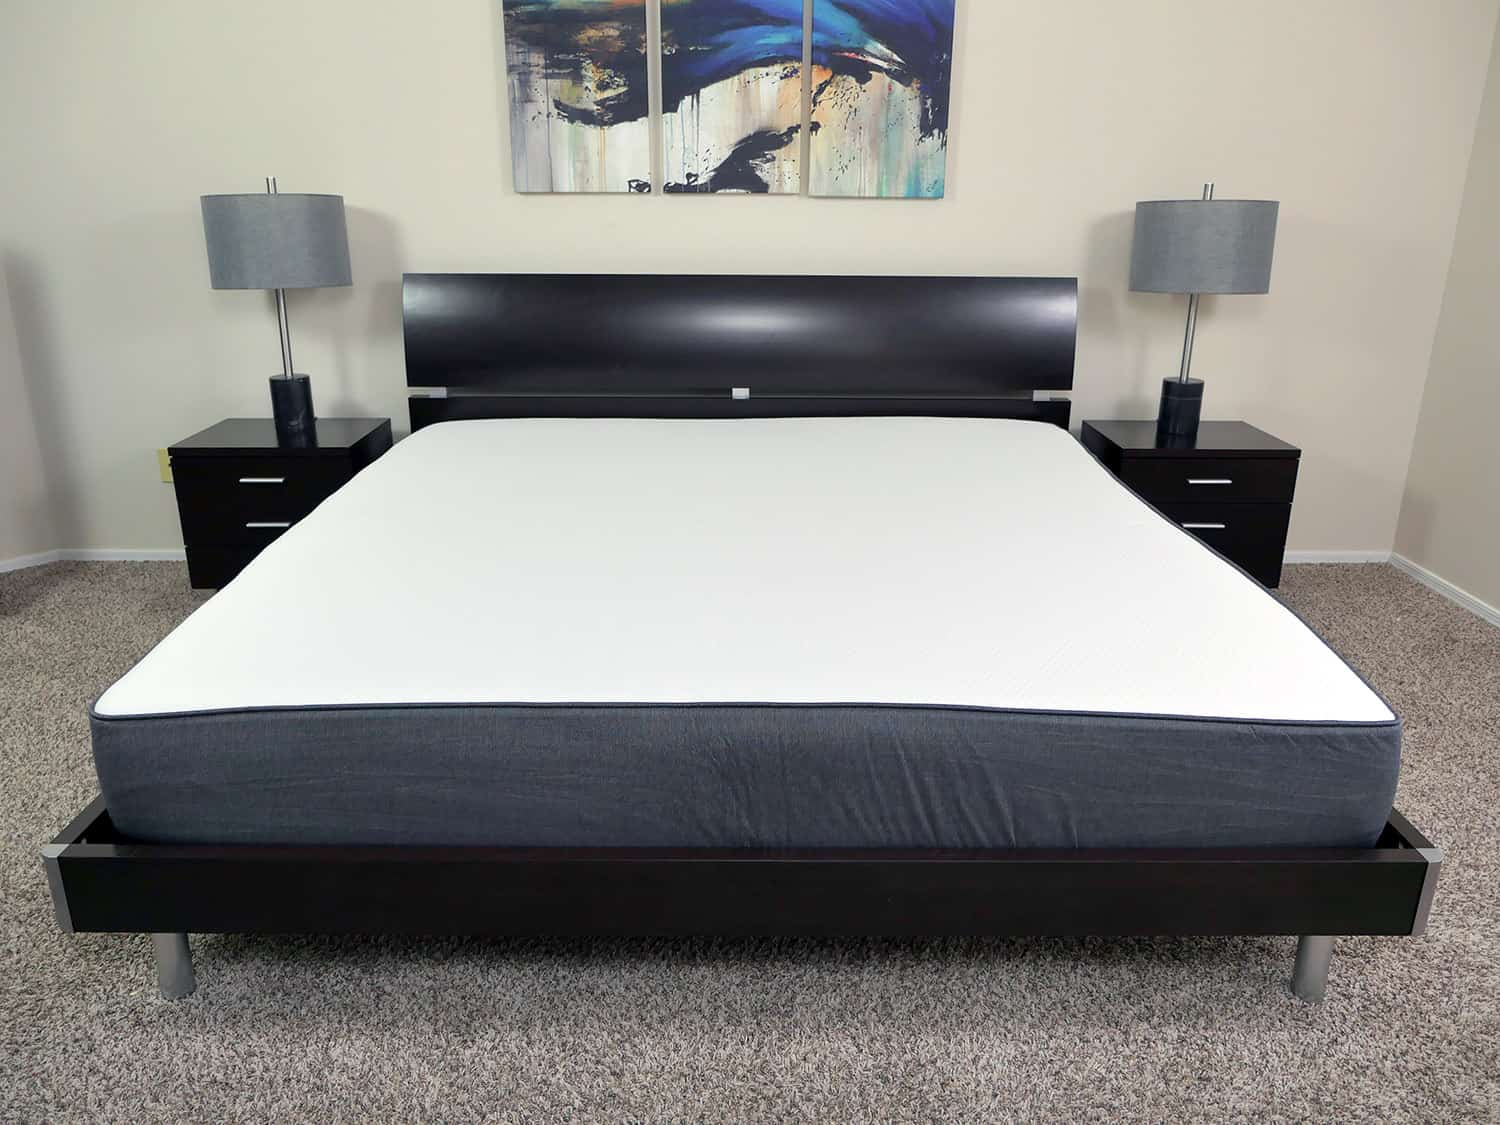 Casper Mattress Review Sleepopolis